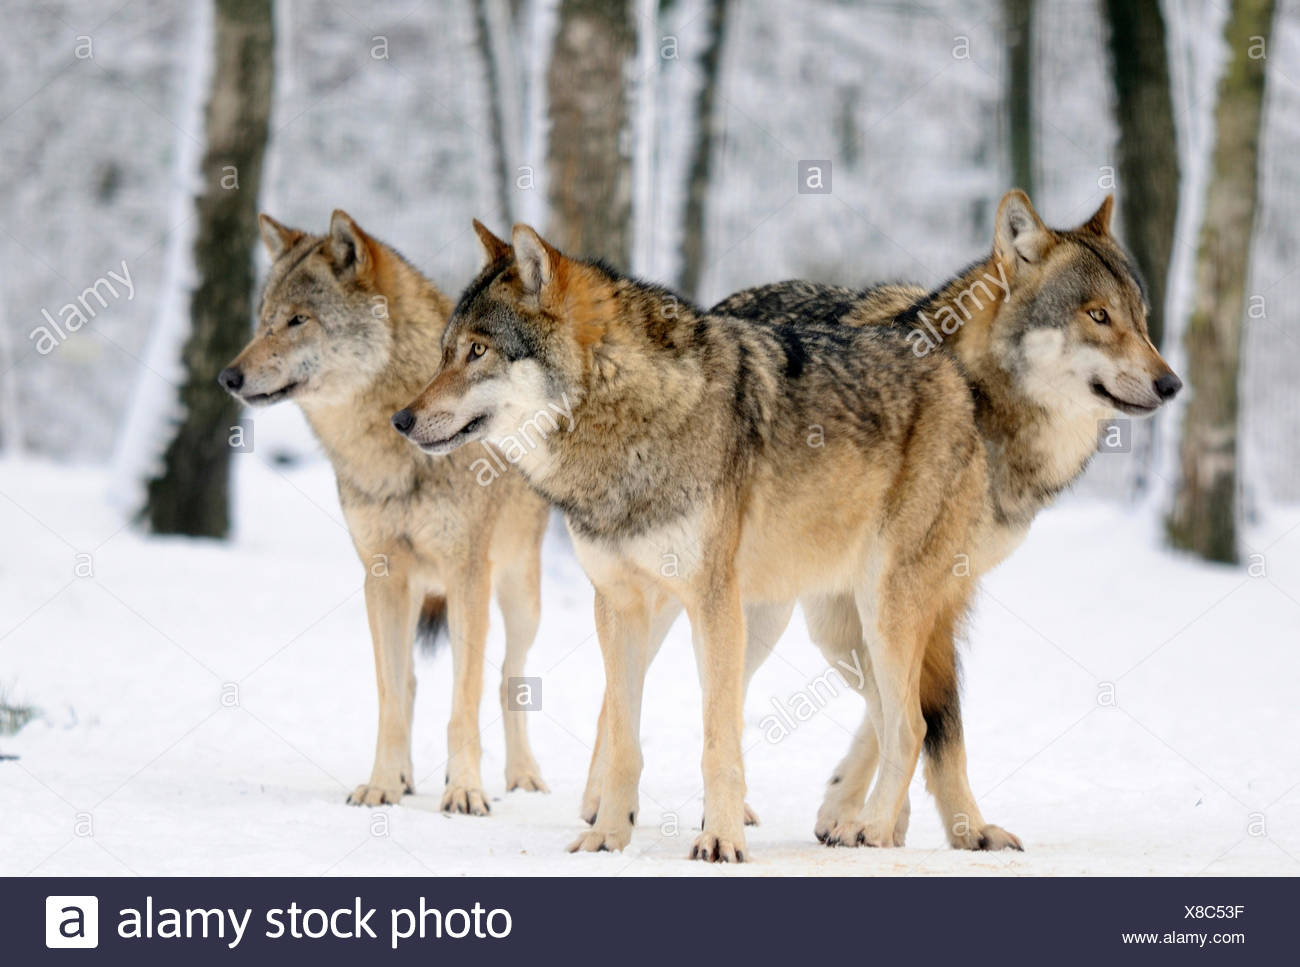 Wolf Germany european wolf canis lupus three wolves in winter landscape